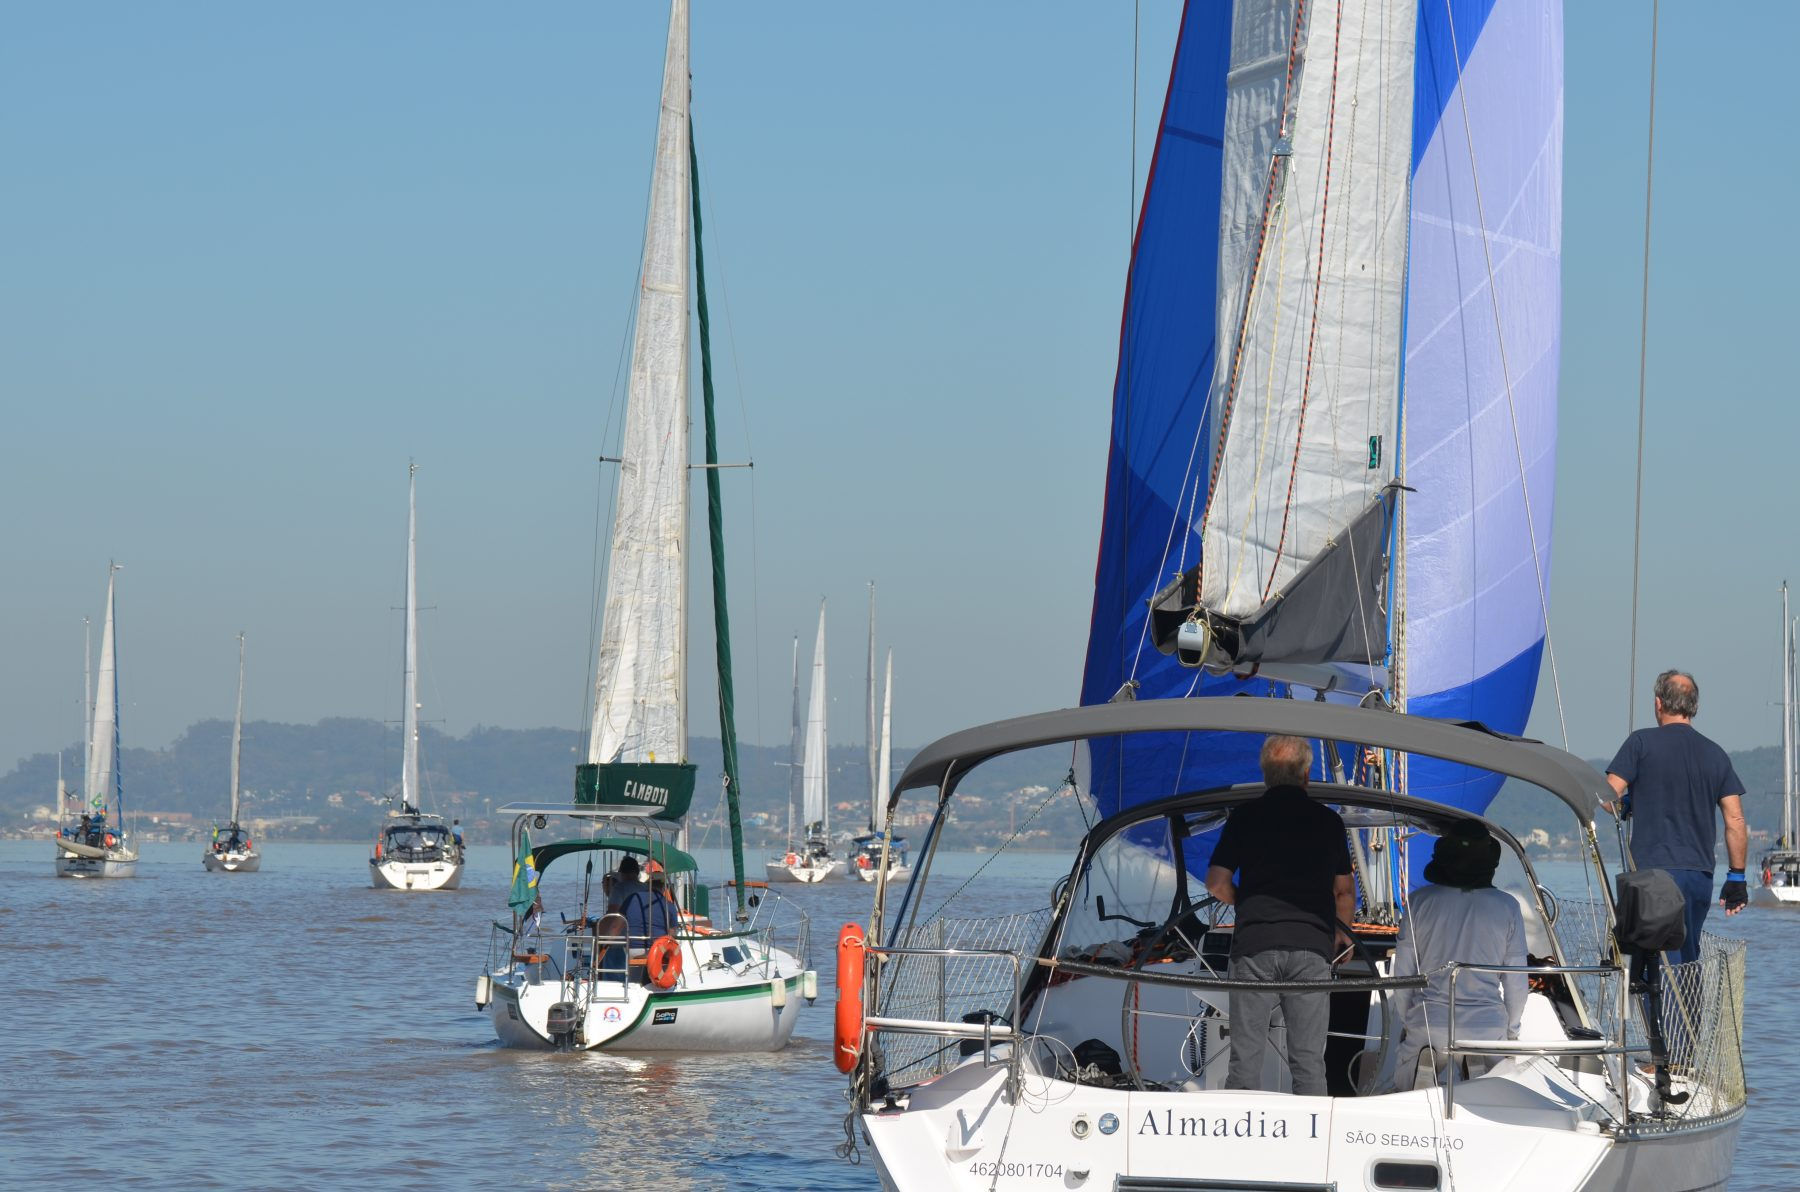 Fotos do VI Cruzeiro-Regata Porto Alegre - Tapes 2018 (1) 19